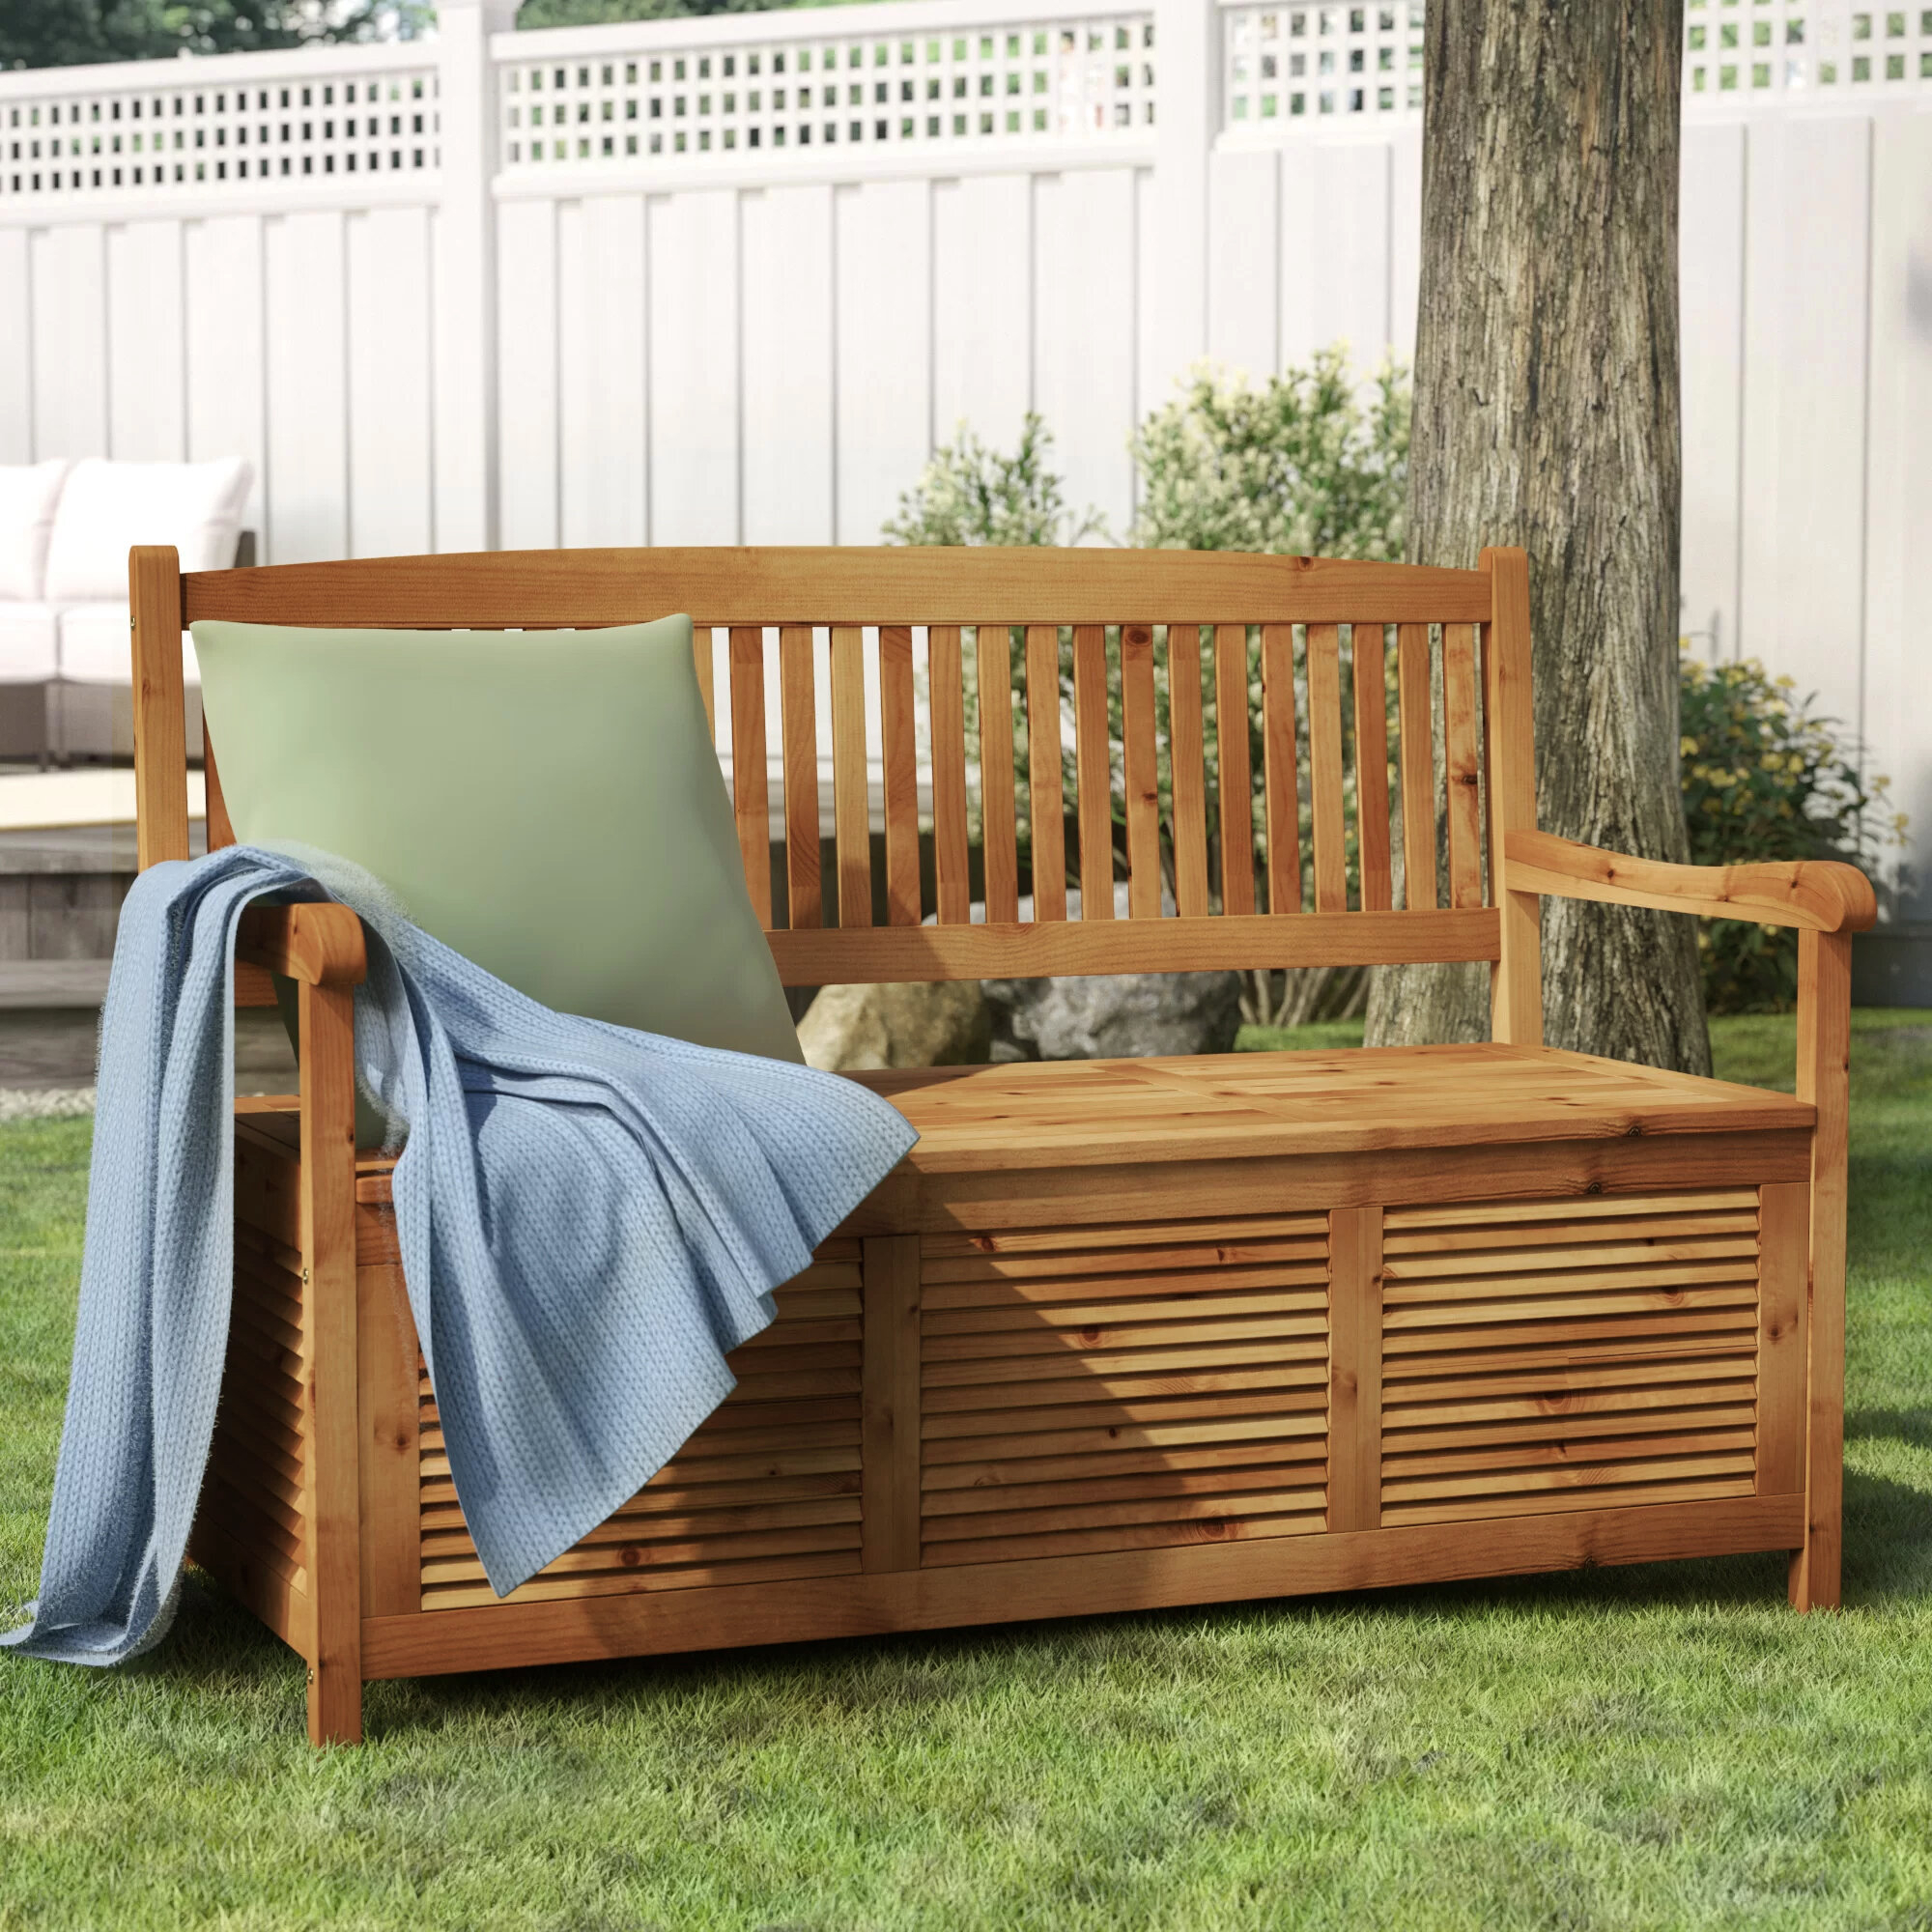 Zephyrine Patio Dining Wooden Picnic Bench Regarding Lucille Timberland Wooden Garden Benches (View 9 of 25)